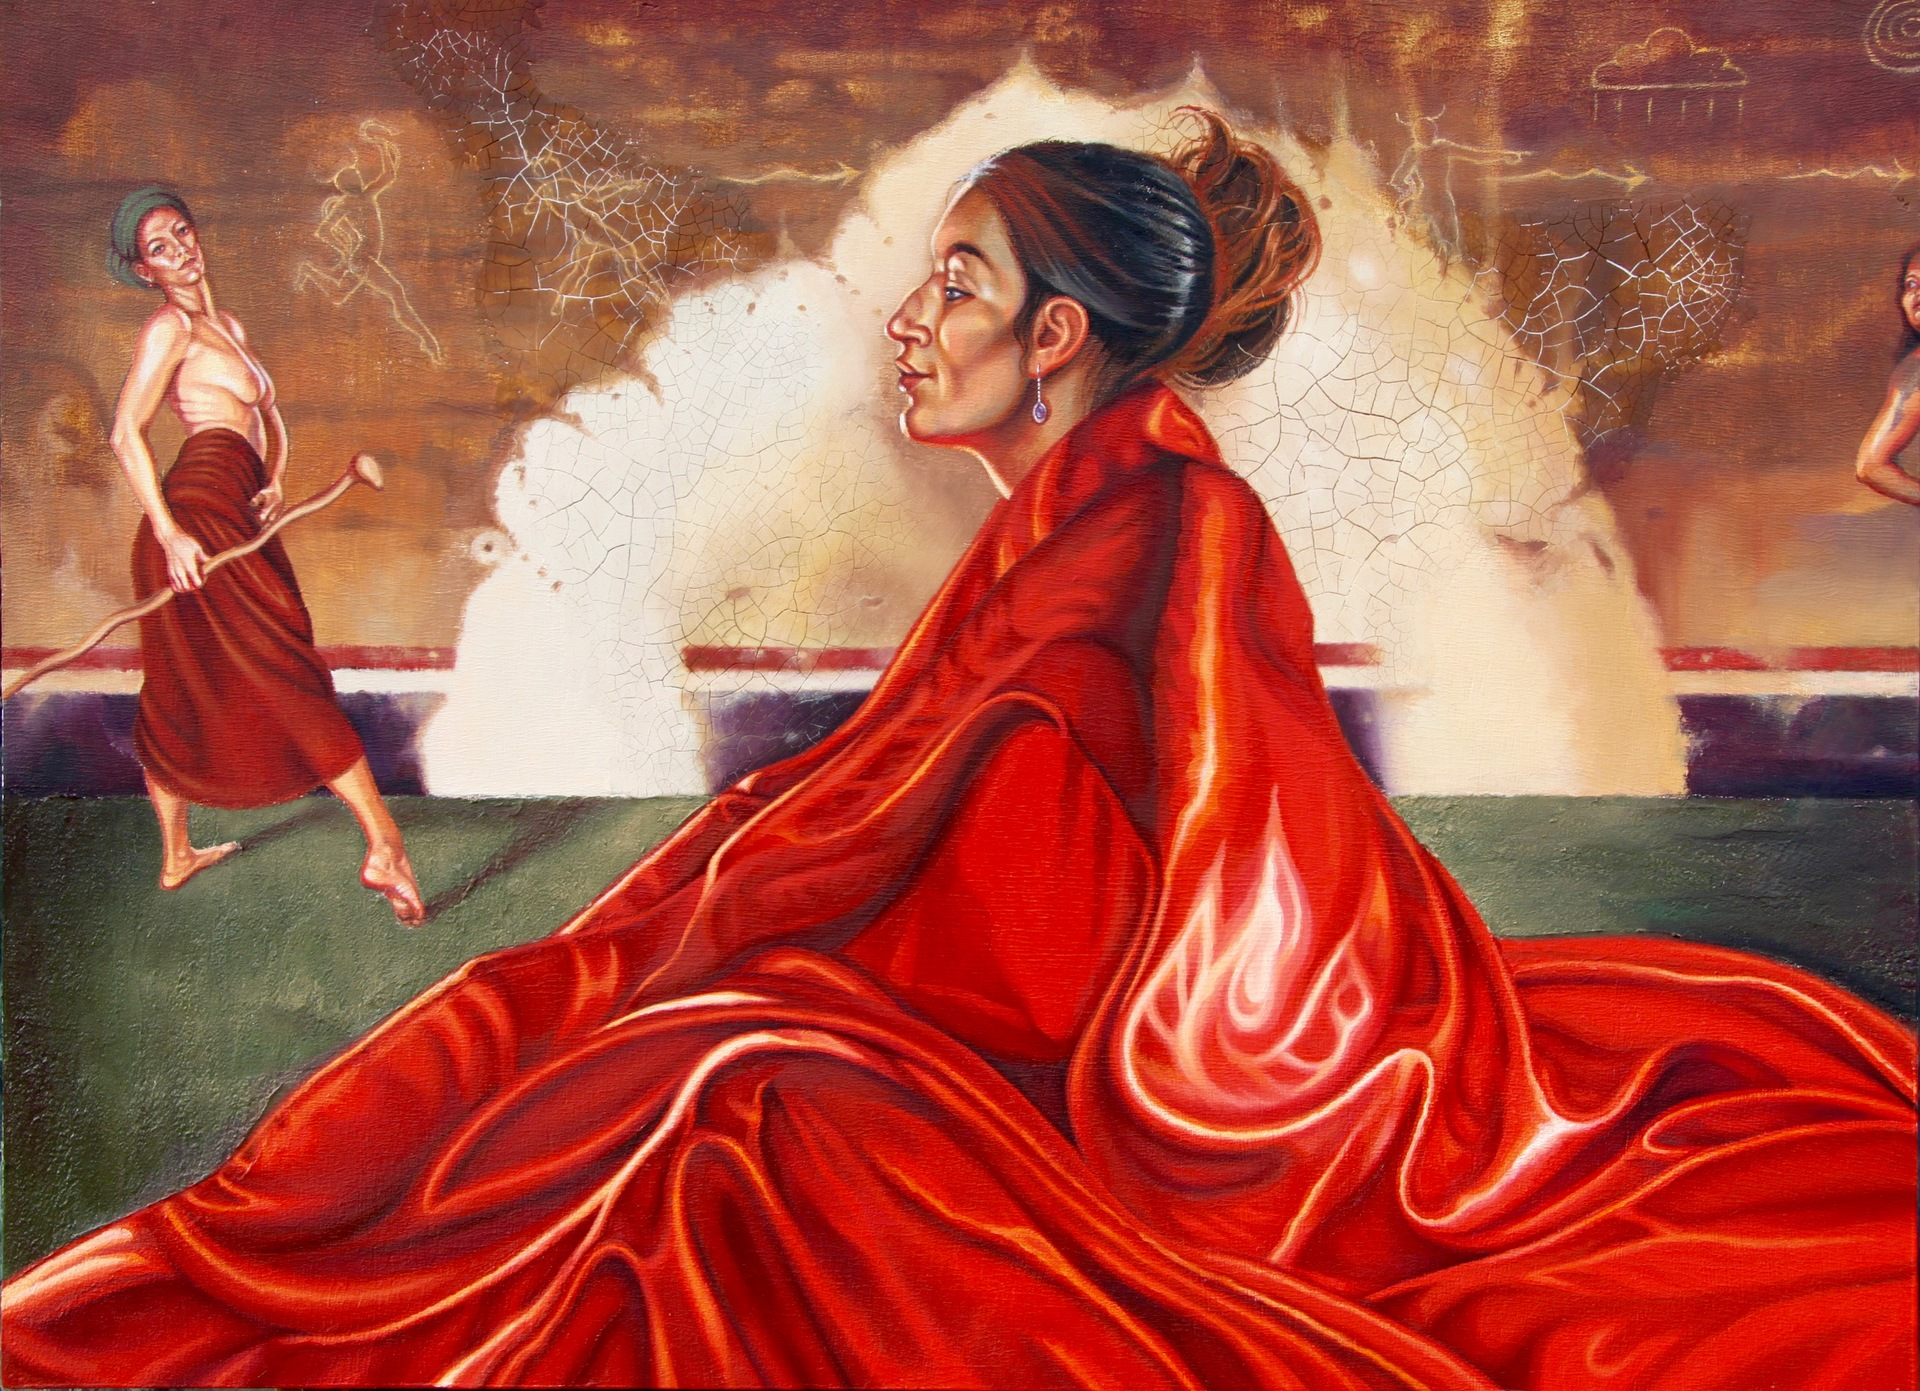 Red Meditation, Tanya Tewell